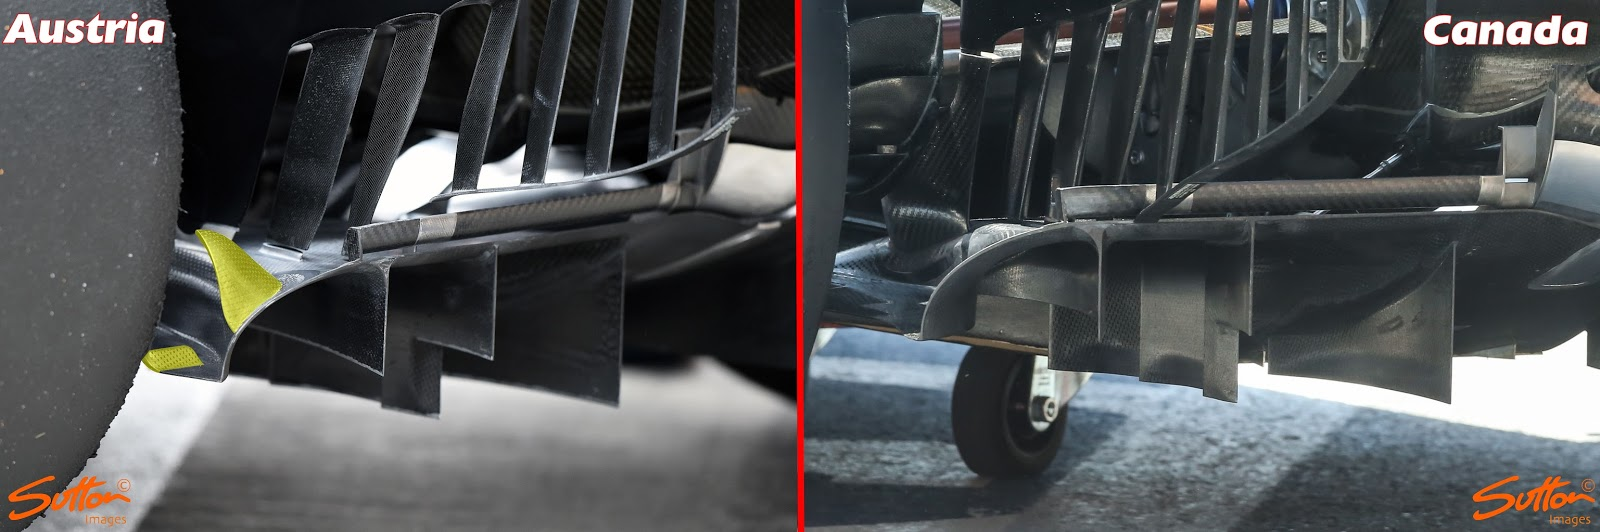 Insight The Floors Of F1 Formula1 Diagram Downforce Generated By Raked Underbody Accompanying Rear Area Is Also Important Very Tight Sidepods Help To Channel Air Flow Over Top Diffuser